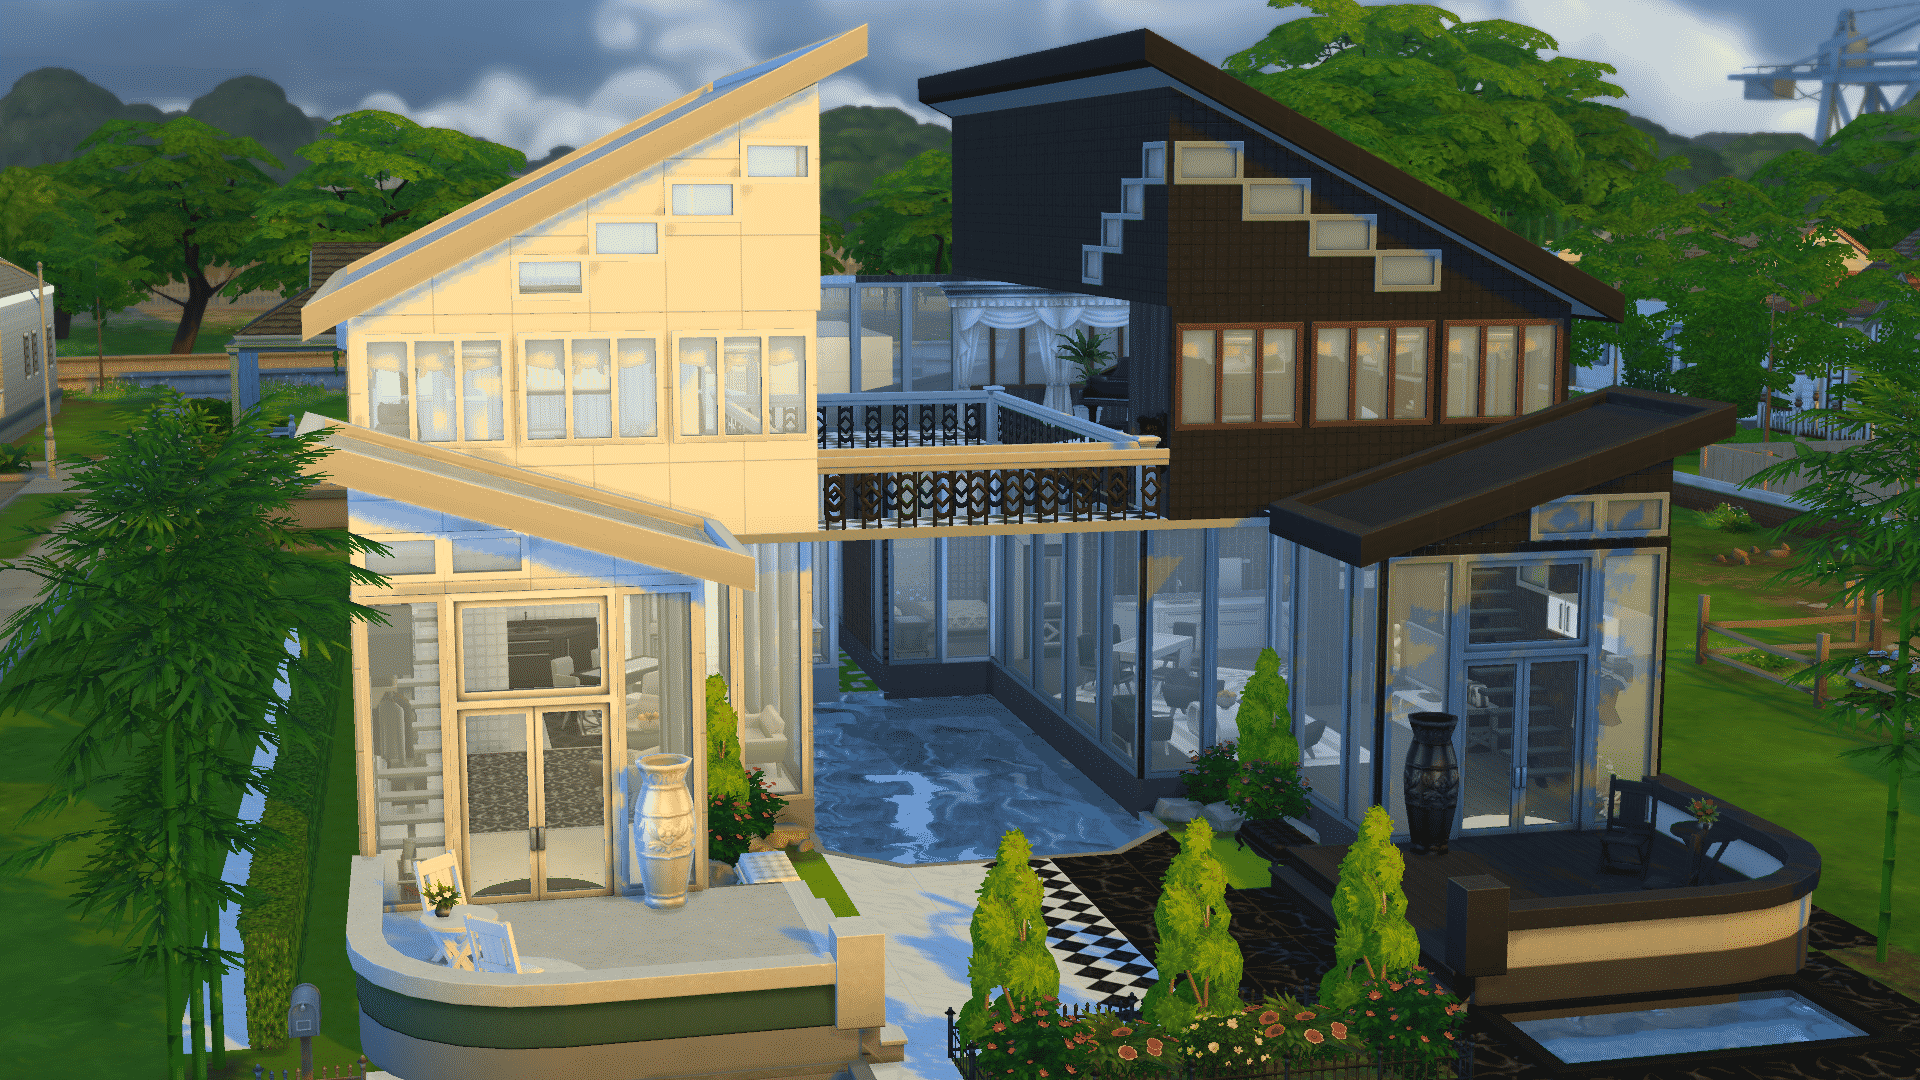 11 28 14 9 37 PM - 38+ Modern Small Sims 4 House Plans Pictures